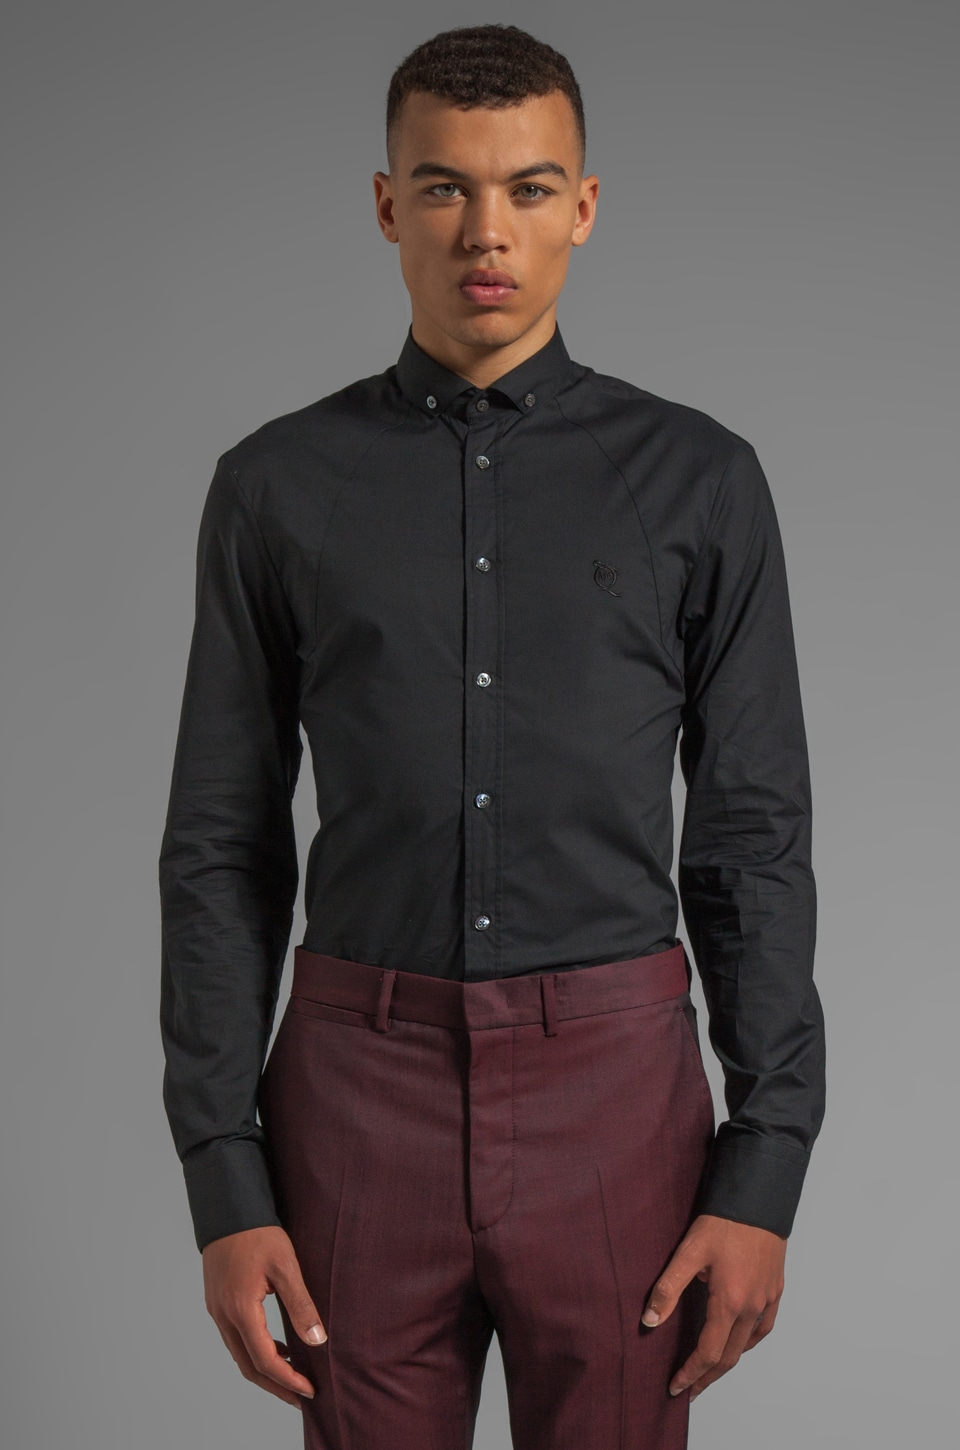 McQ Alexander McQueen Shirting Harness Button Up in Velvet Black